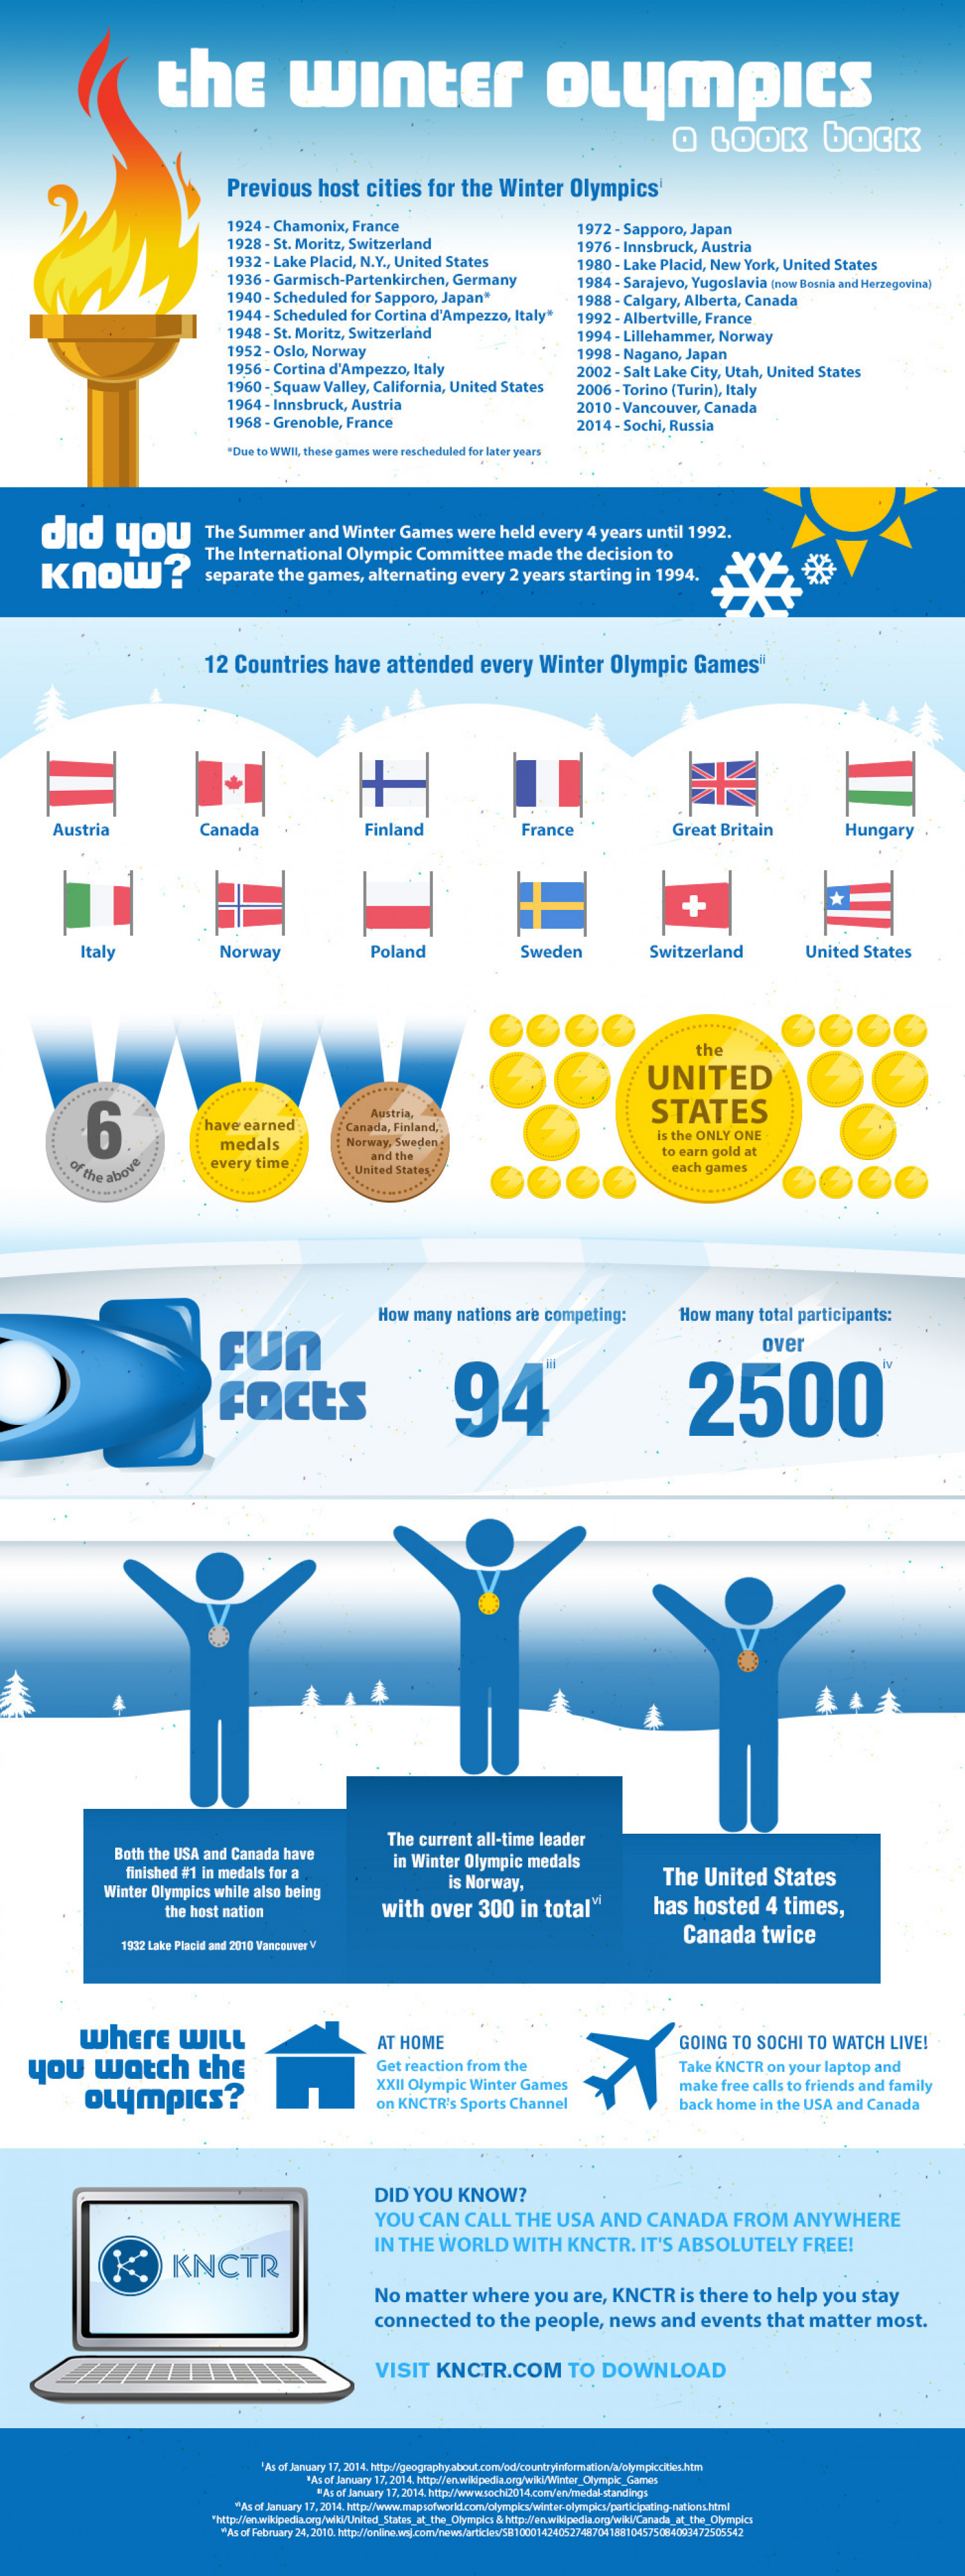 The Winter Olympics - A Look Back Infographic